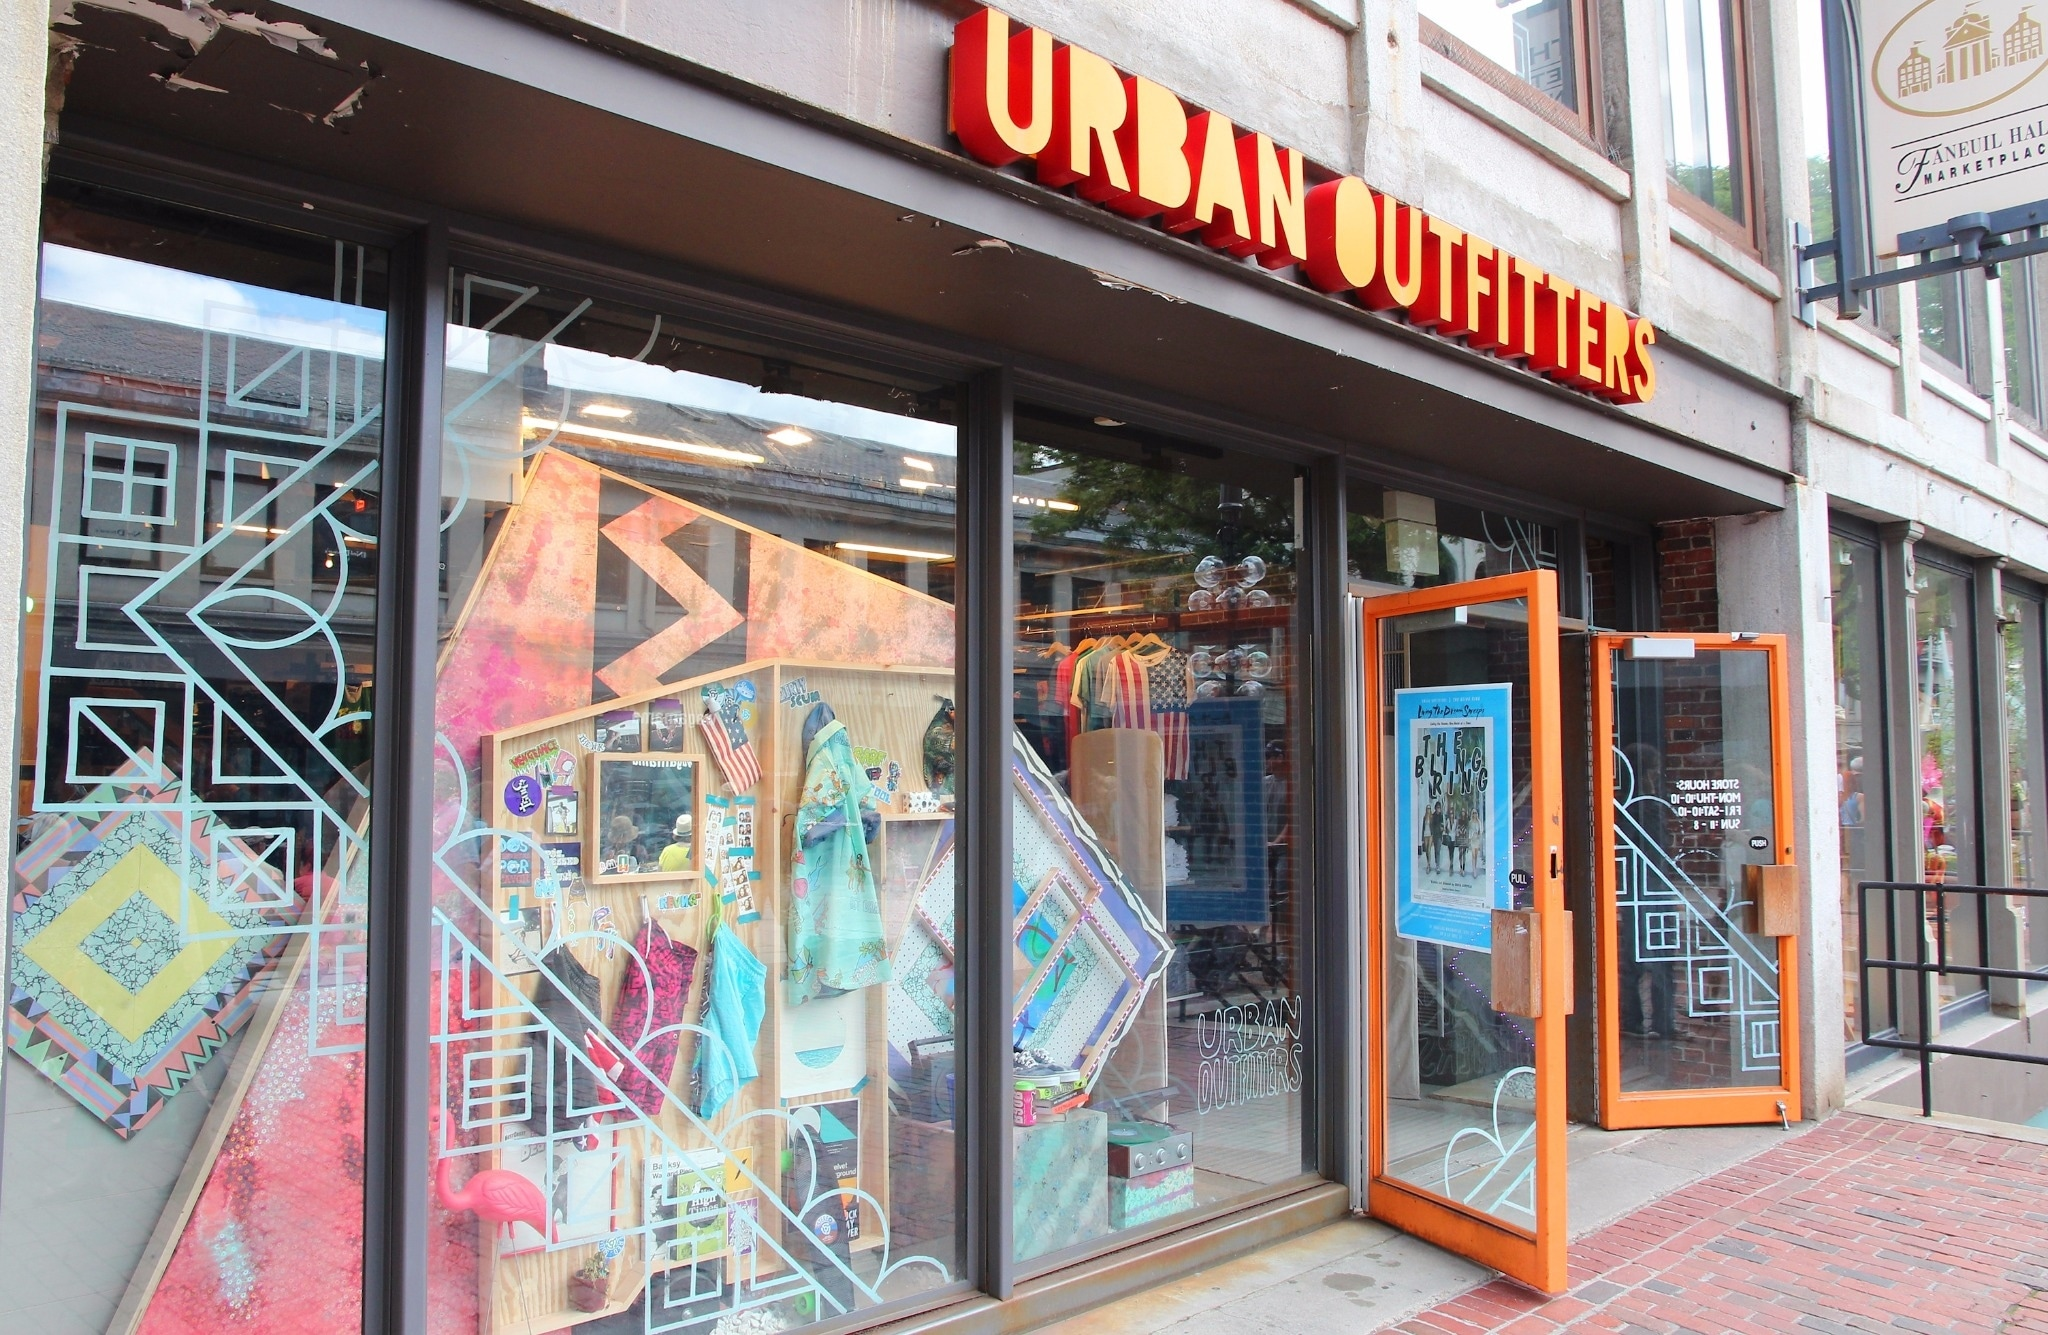 Urban Outfitters App: Google Play. Unlock exclusive deals, get early access to sales, and more on the Urban Outfitters app. Click to check it out on the Google Play store/5(11).